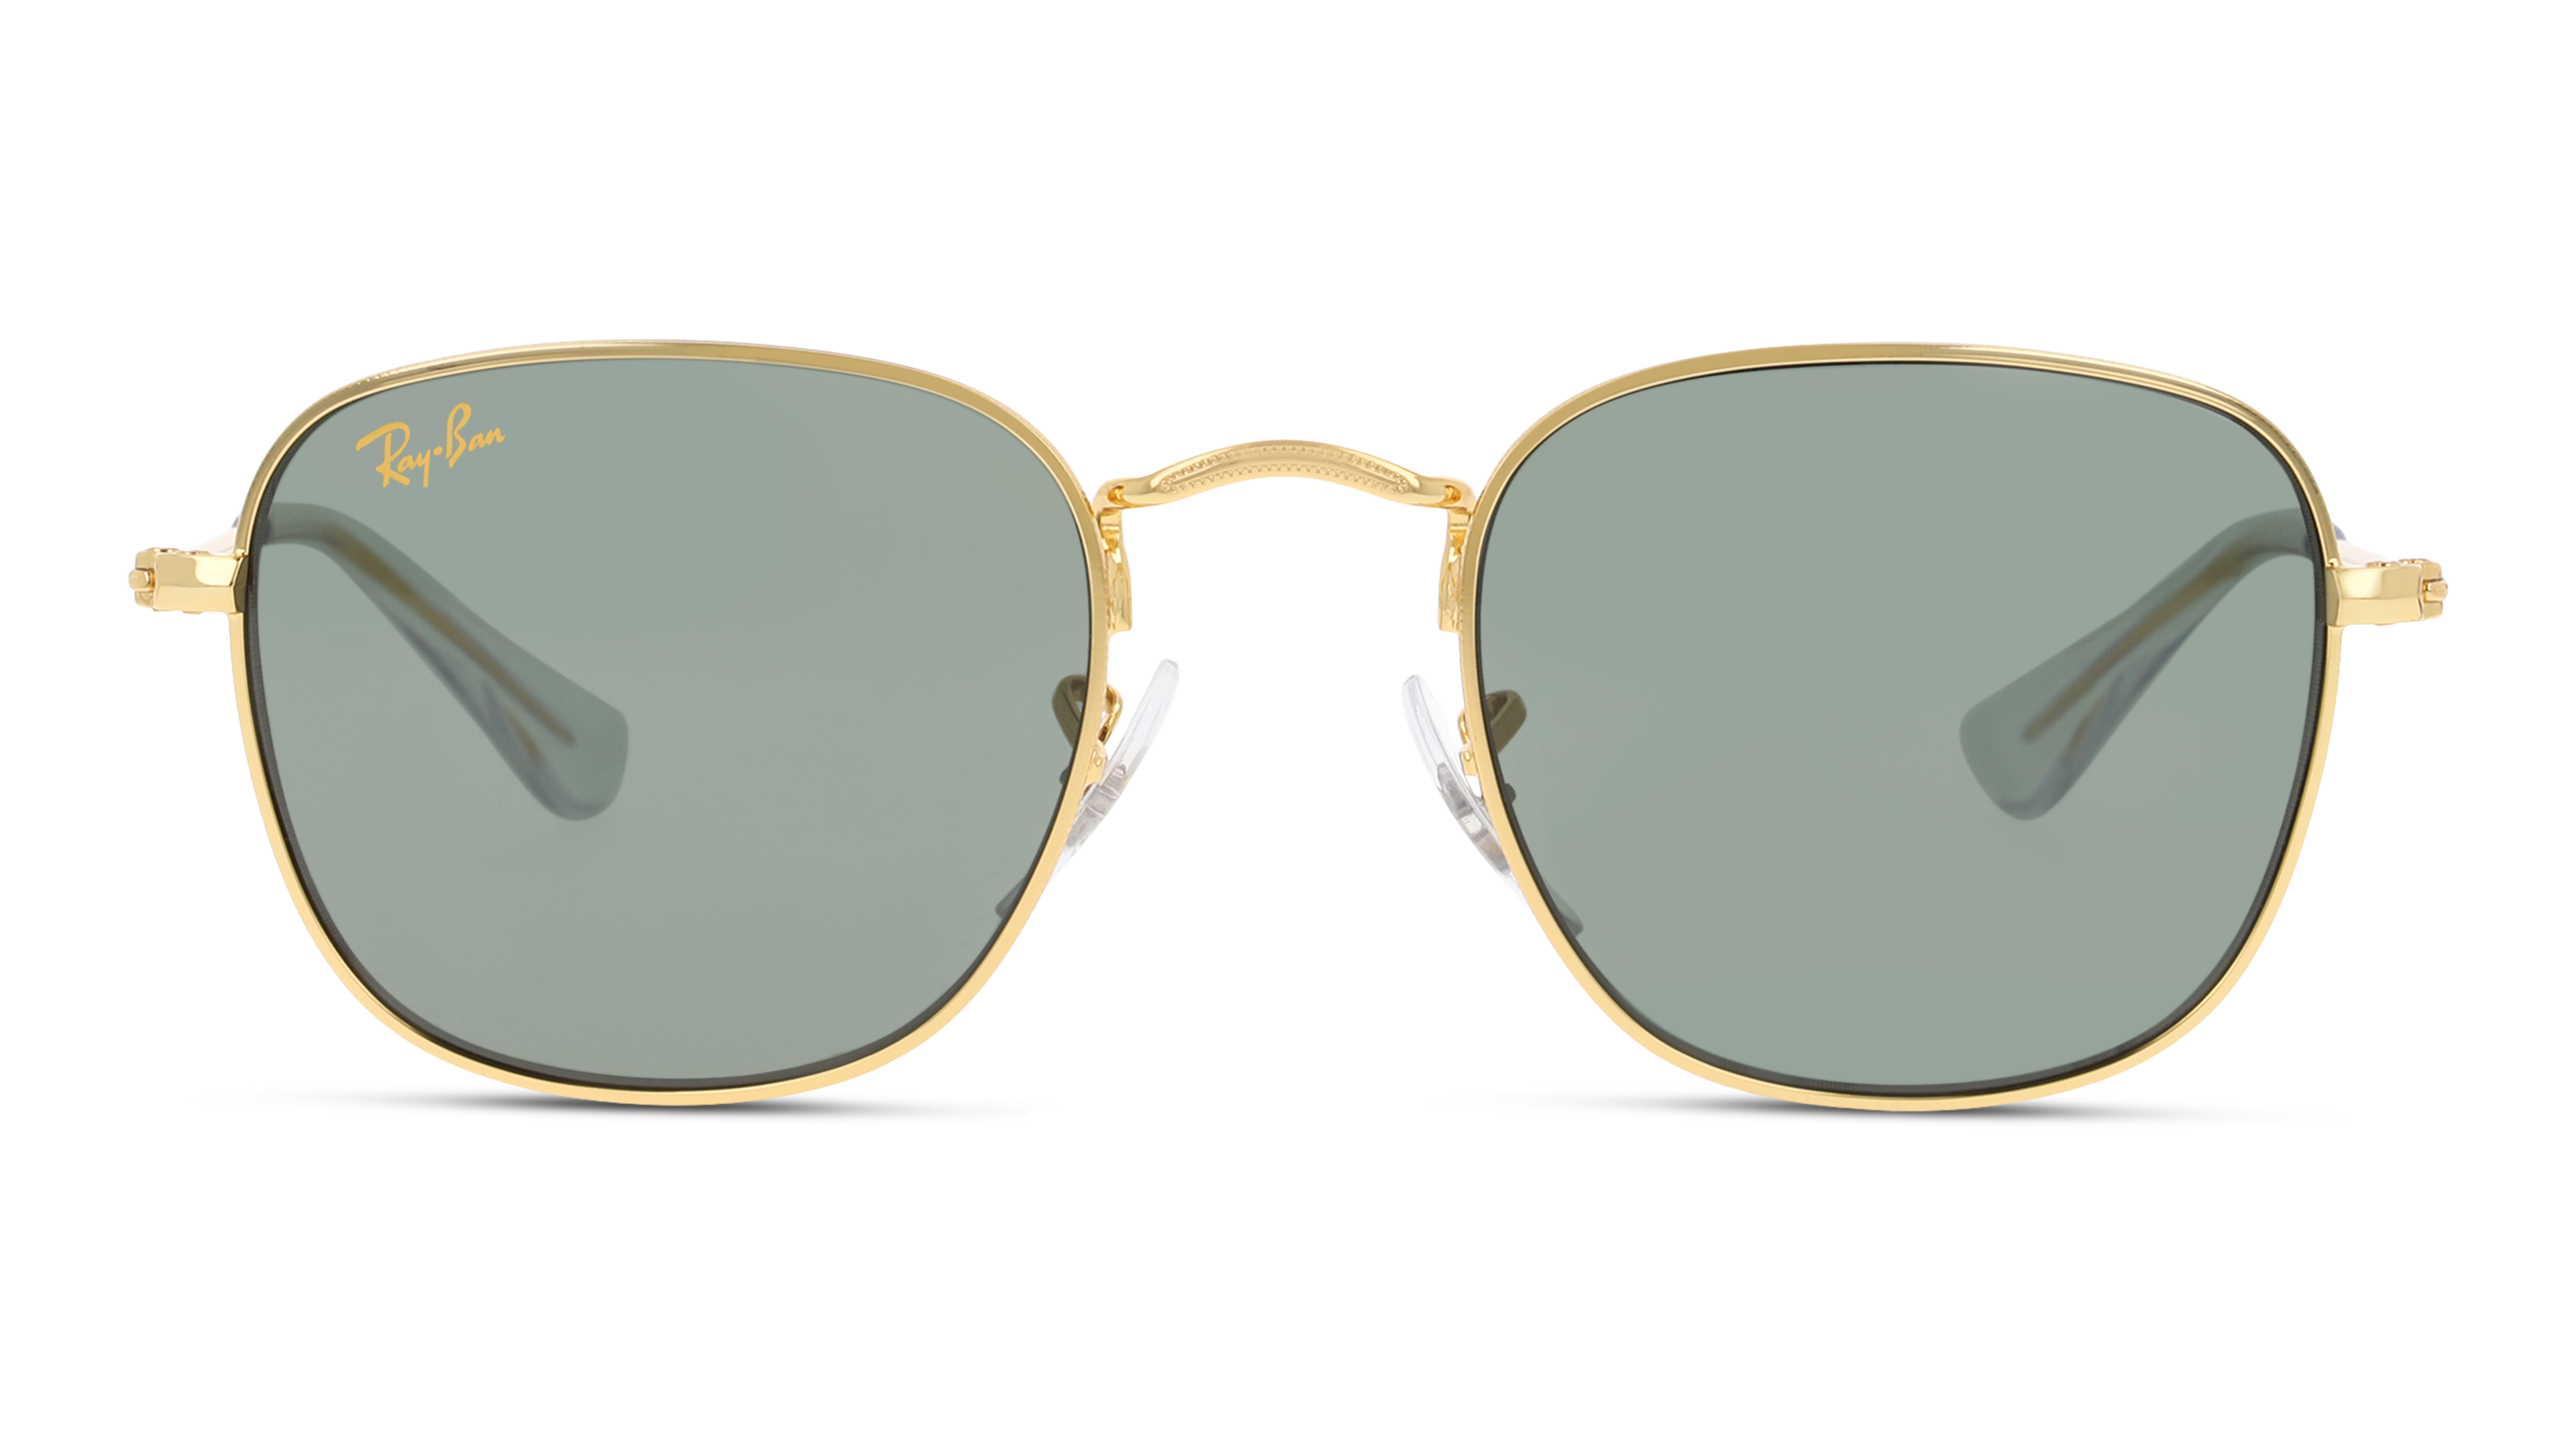 Front Ray-Ban Ray-Ban 0RJ9557S 286/71 46/19 Goud/Groen